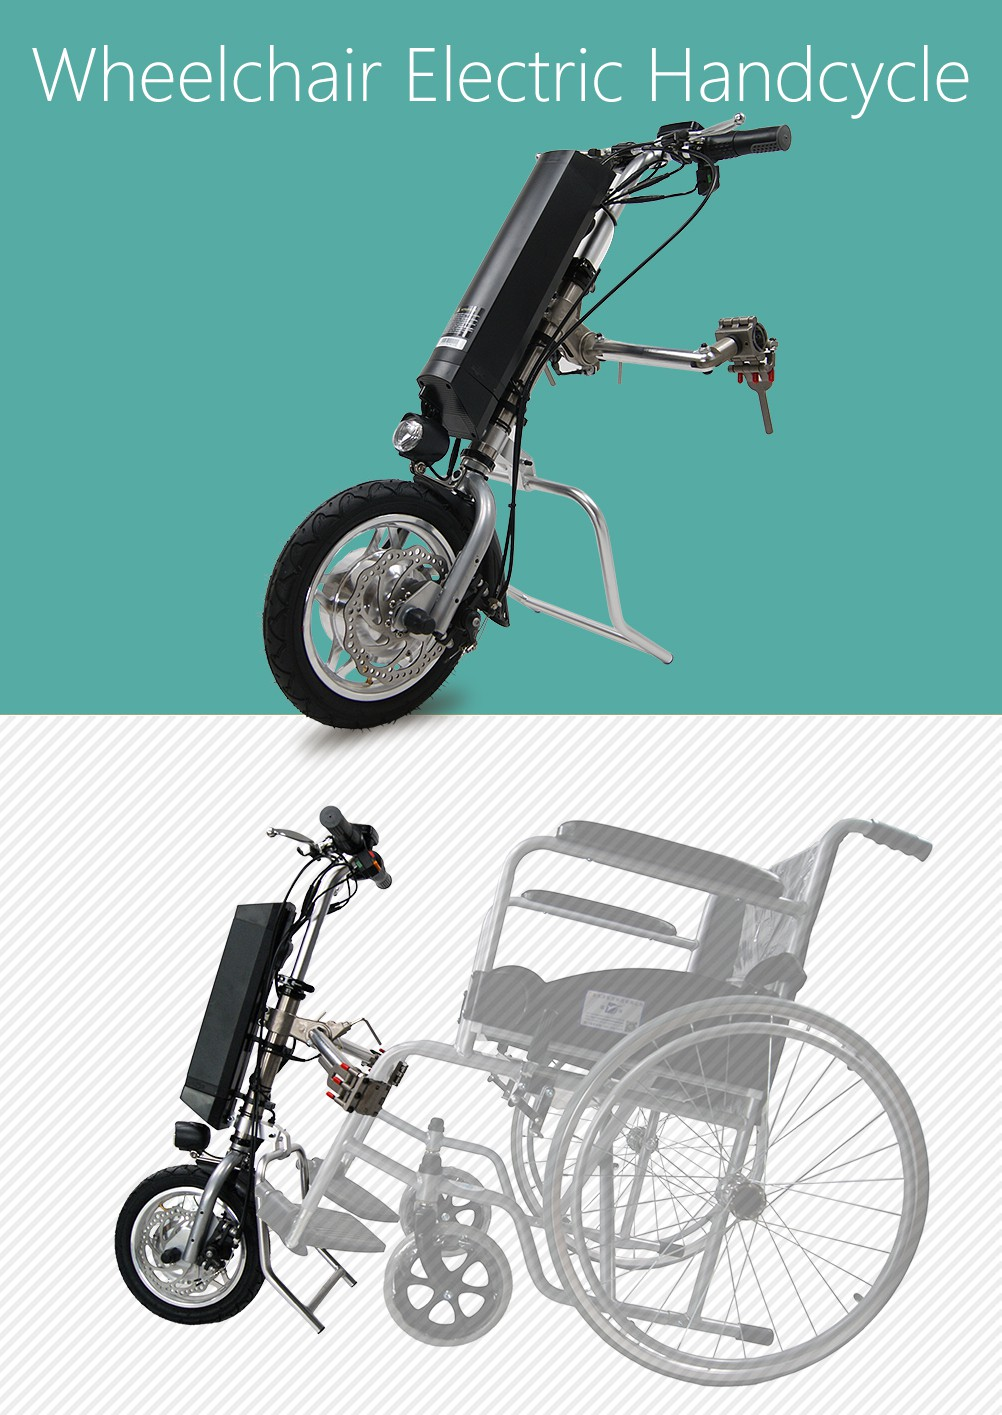 Products elderly care products elderly care products product on - Elderly Care Products Wheelchair Electric Handbike With Ce Certificate Buy Wheelchair Electric Handbike Wheelchair Electric Handbike Wheelchair Electric